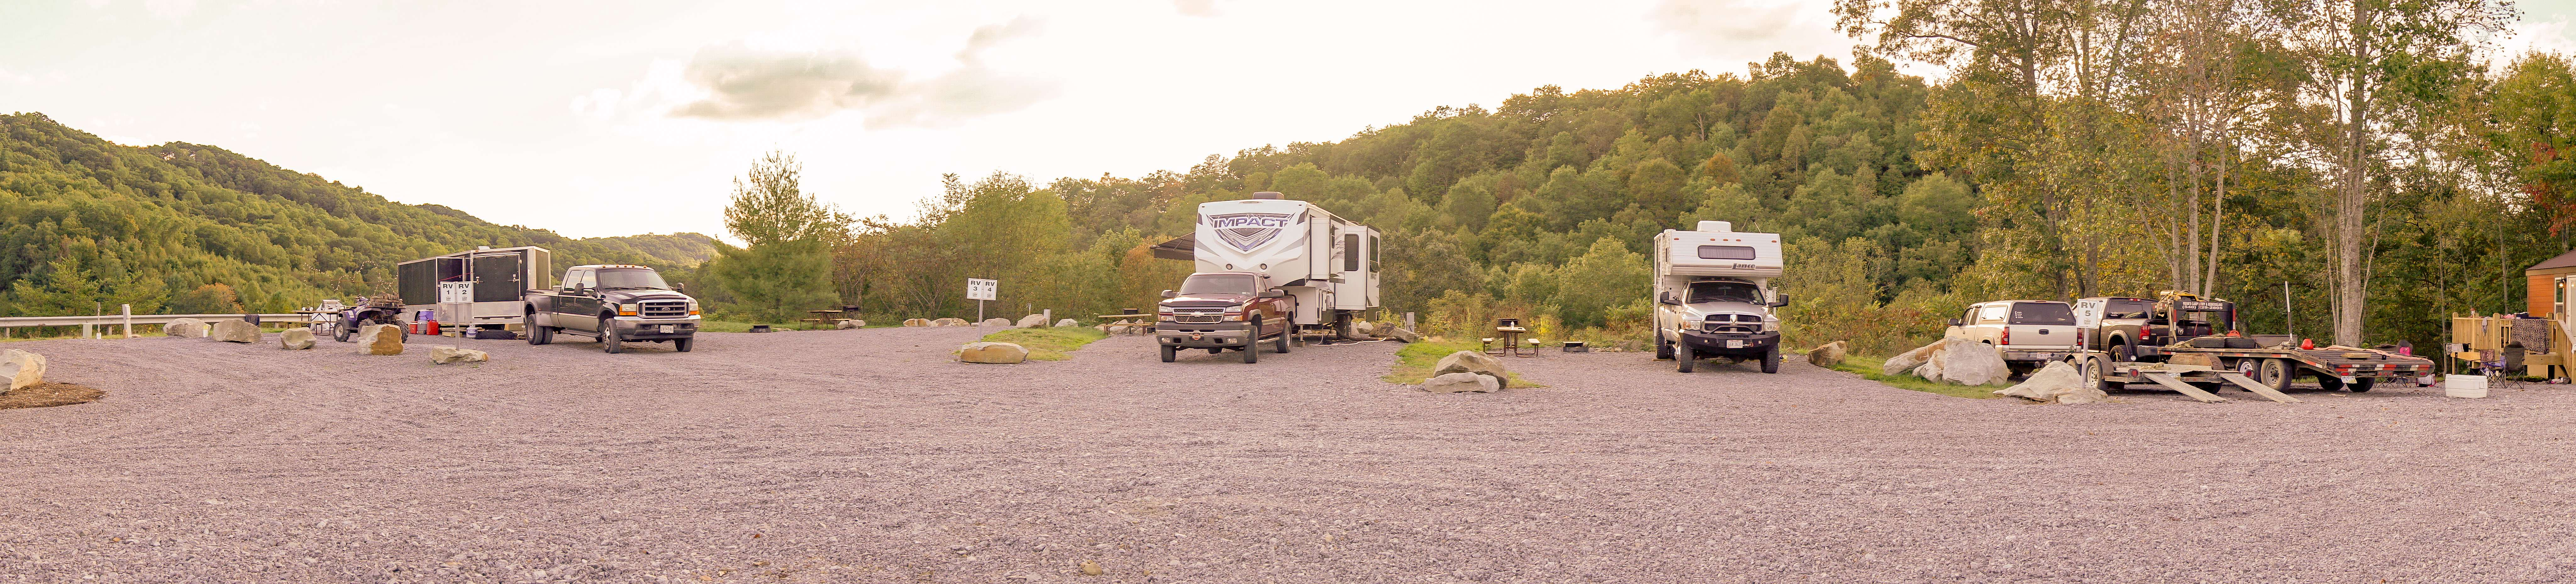 RV-Trailhead Resort Fall